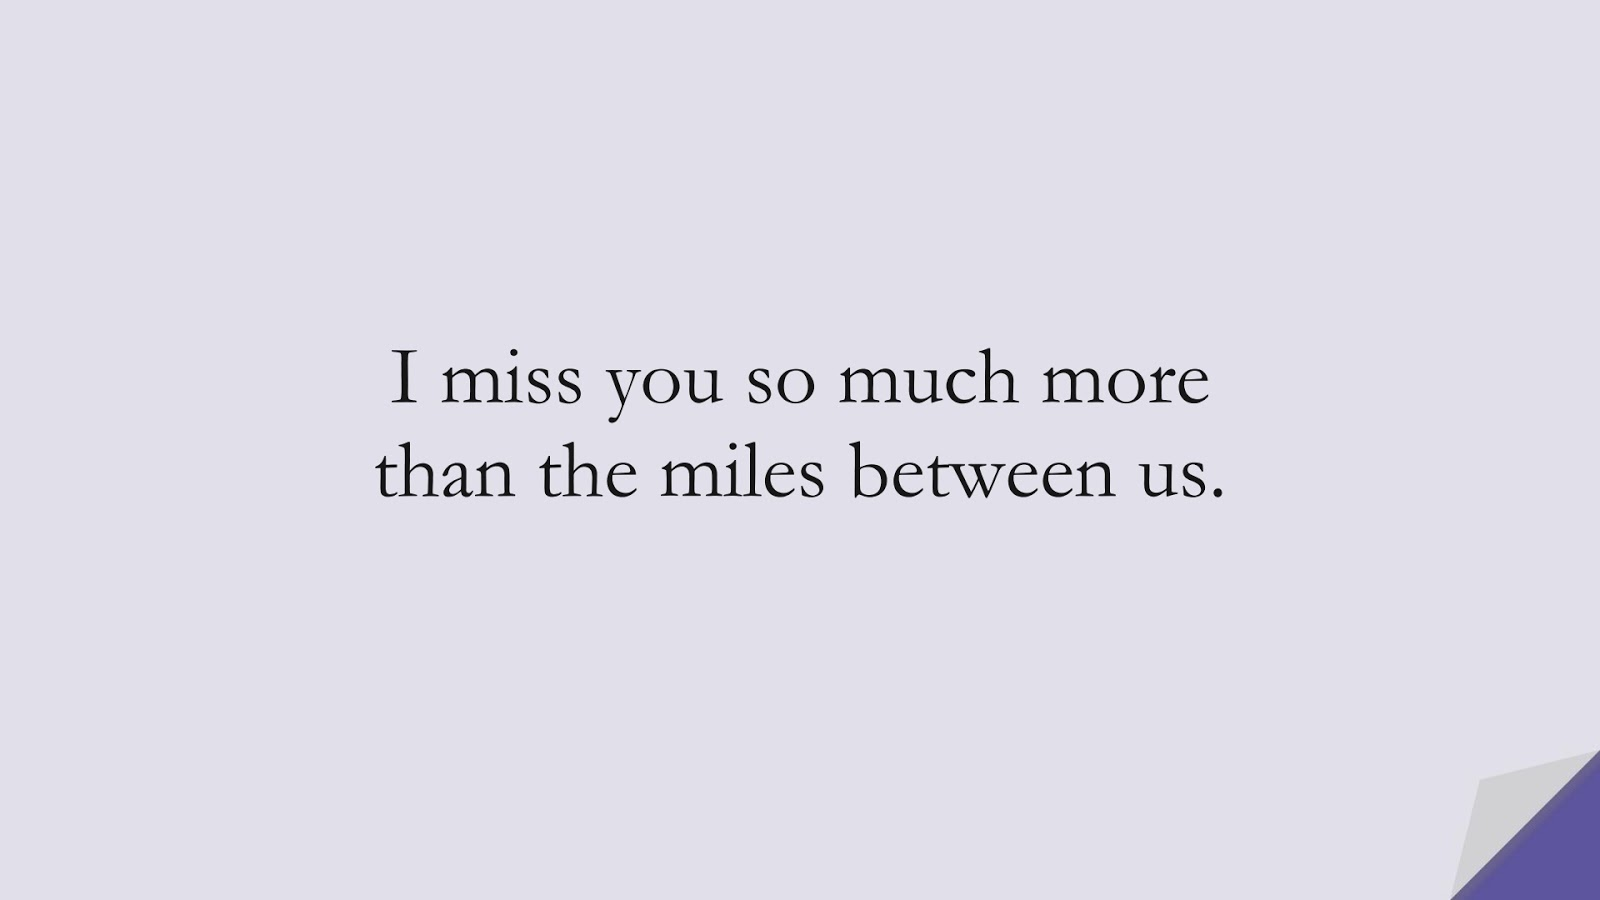 I miss you so much more than the miles between us.FALSE